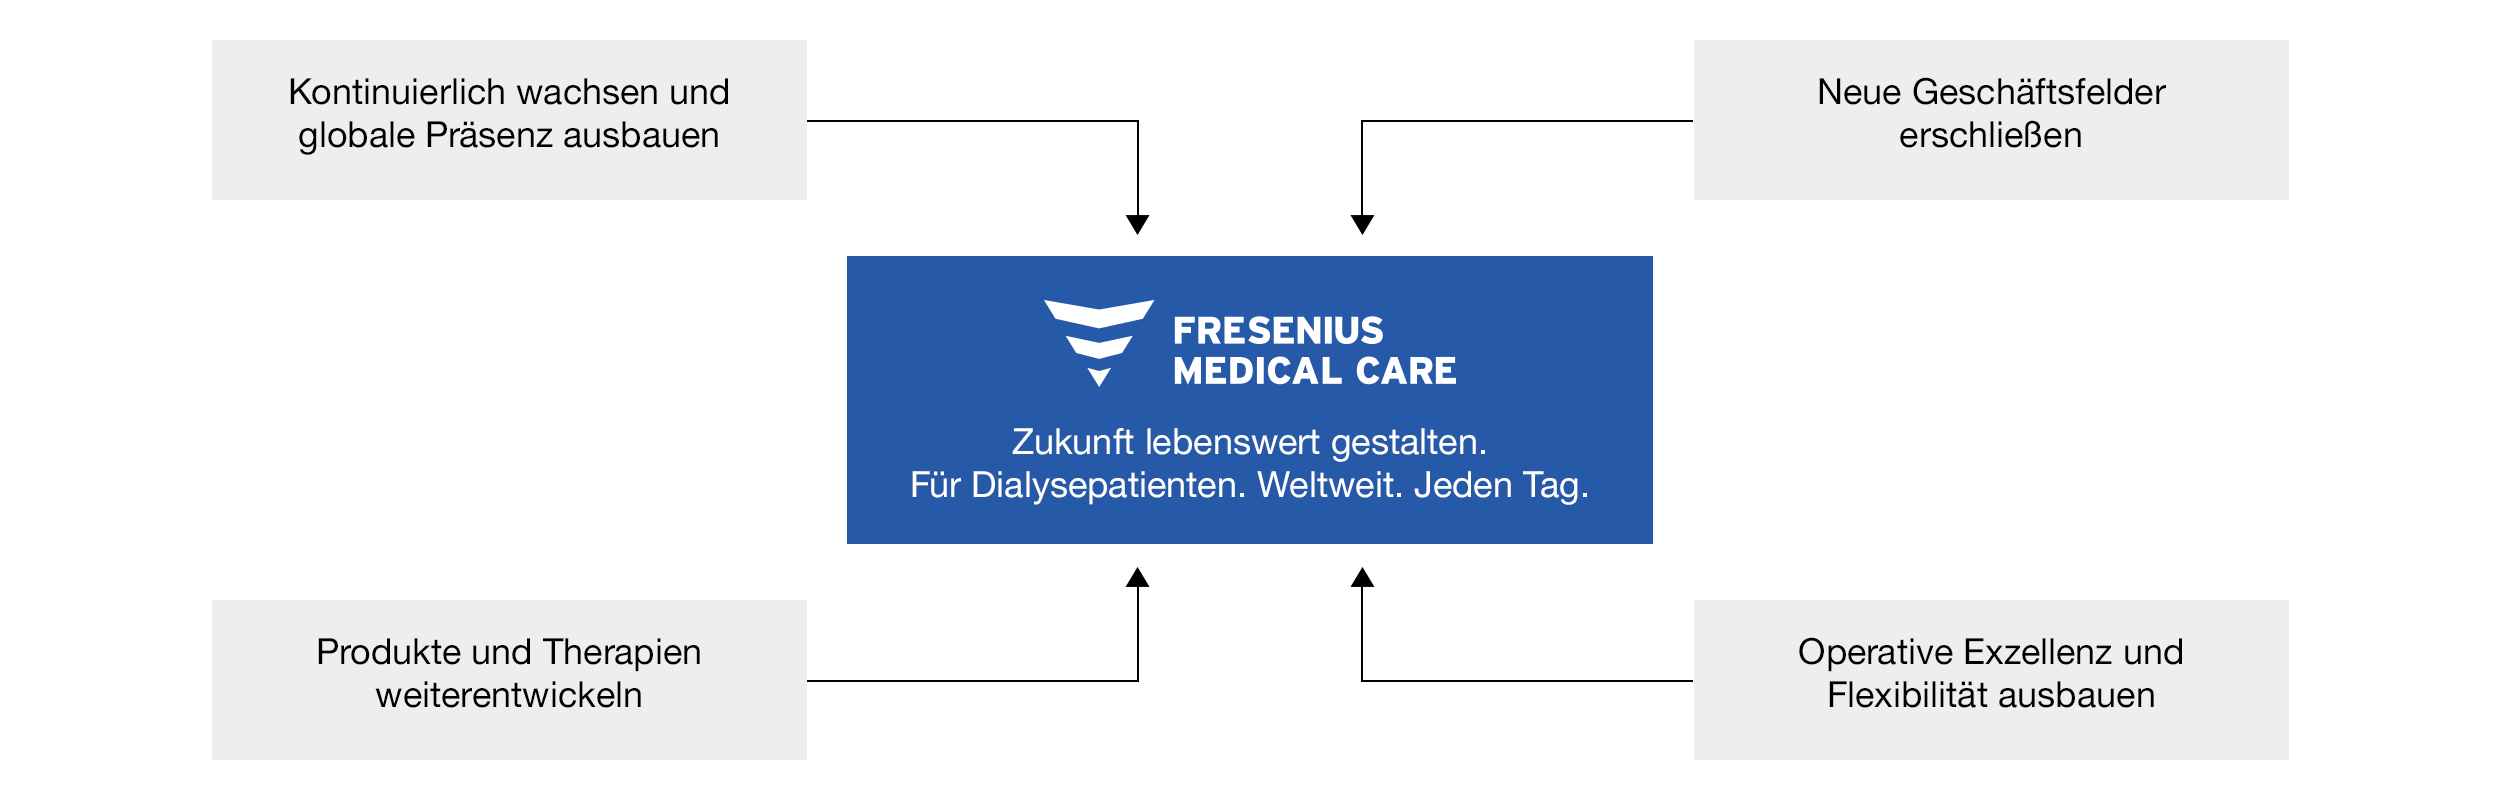 Fresenius Medical Care Unternehmensstrategie